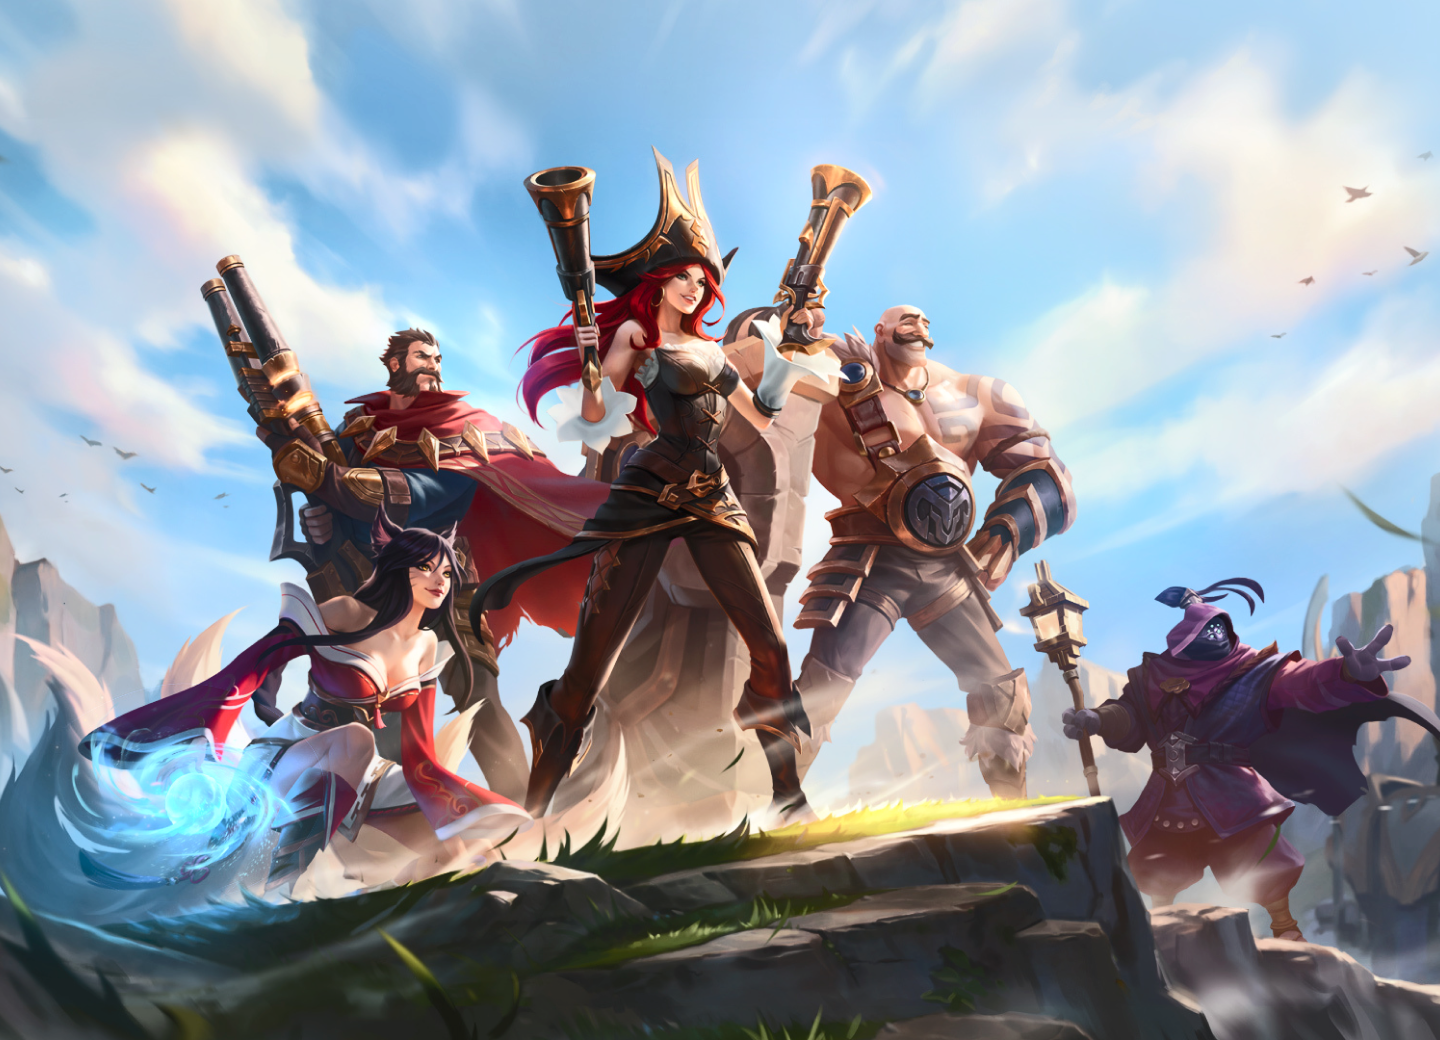 League of legends characters posing on a sunny day at the top of a mountain.